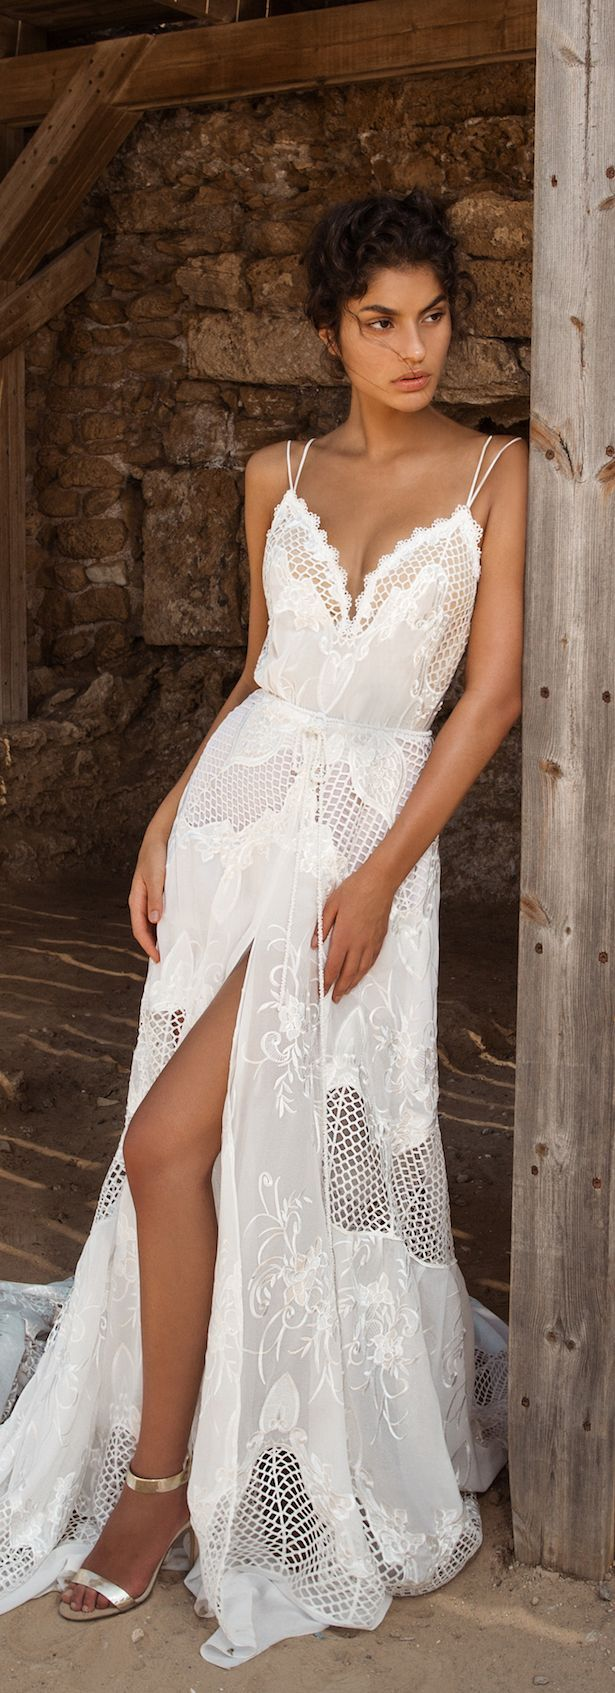 Simple boho wedding dress with spaghetti straps, open split skirt and embroidery perfect for the rustic bride or outdoor wedding. Wedding Dress - GALA Collection NO. III by Galia Lahav